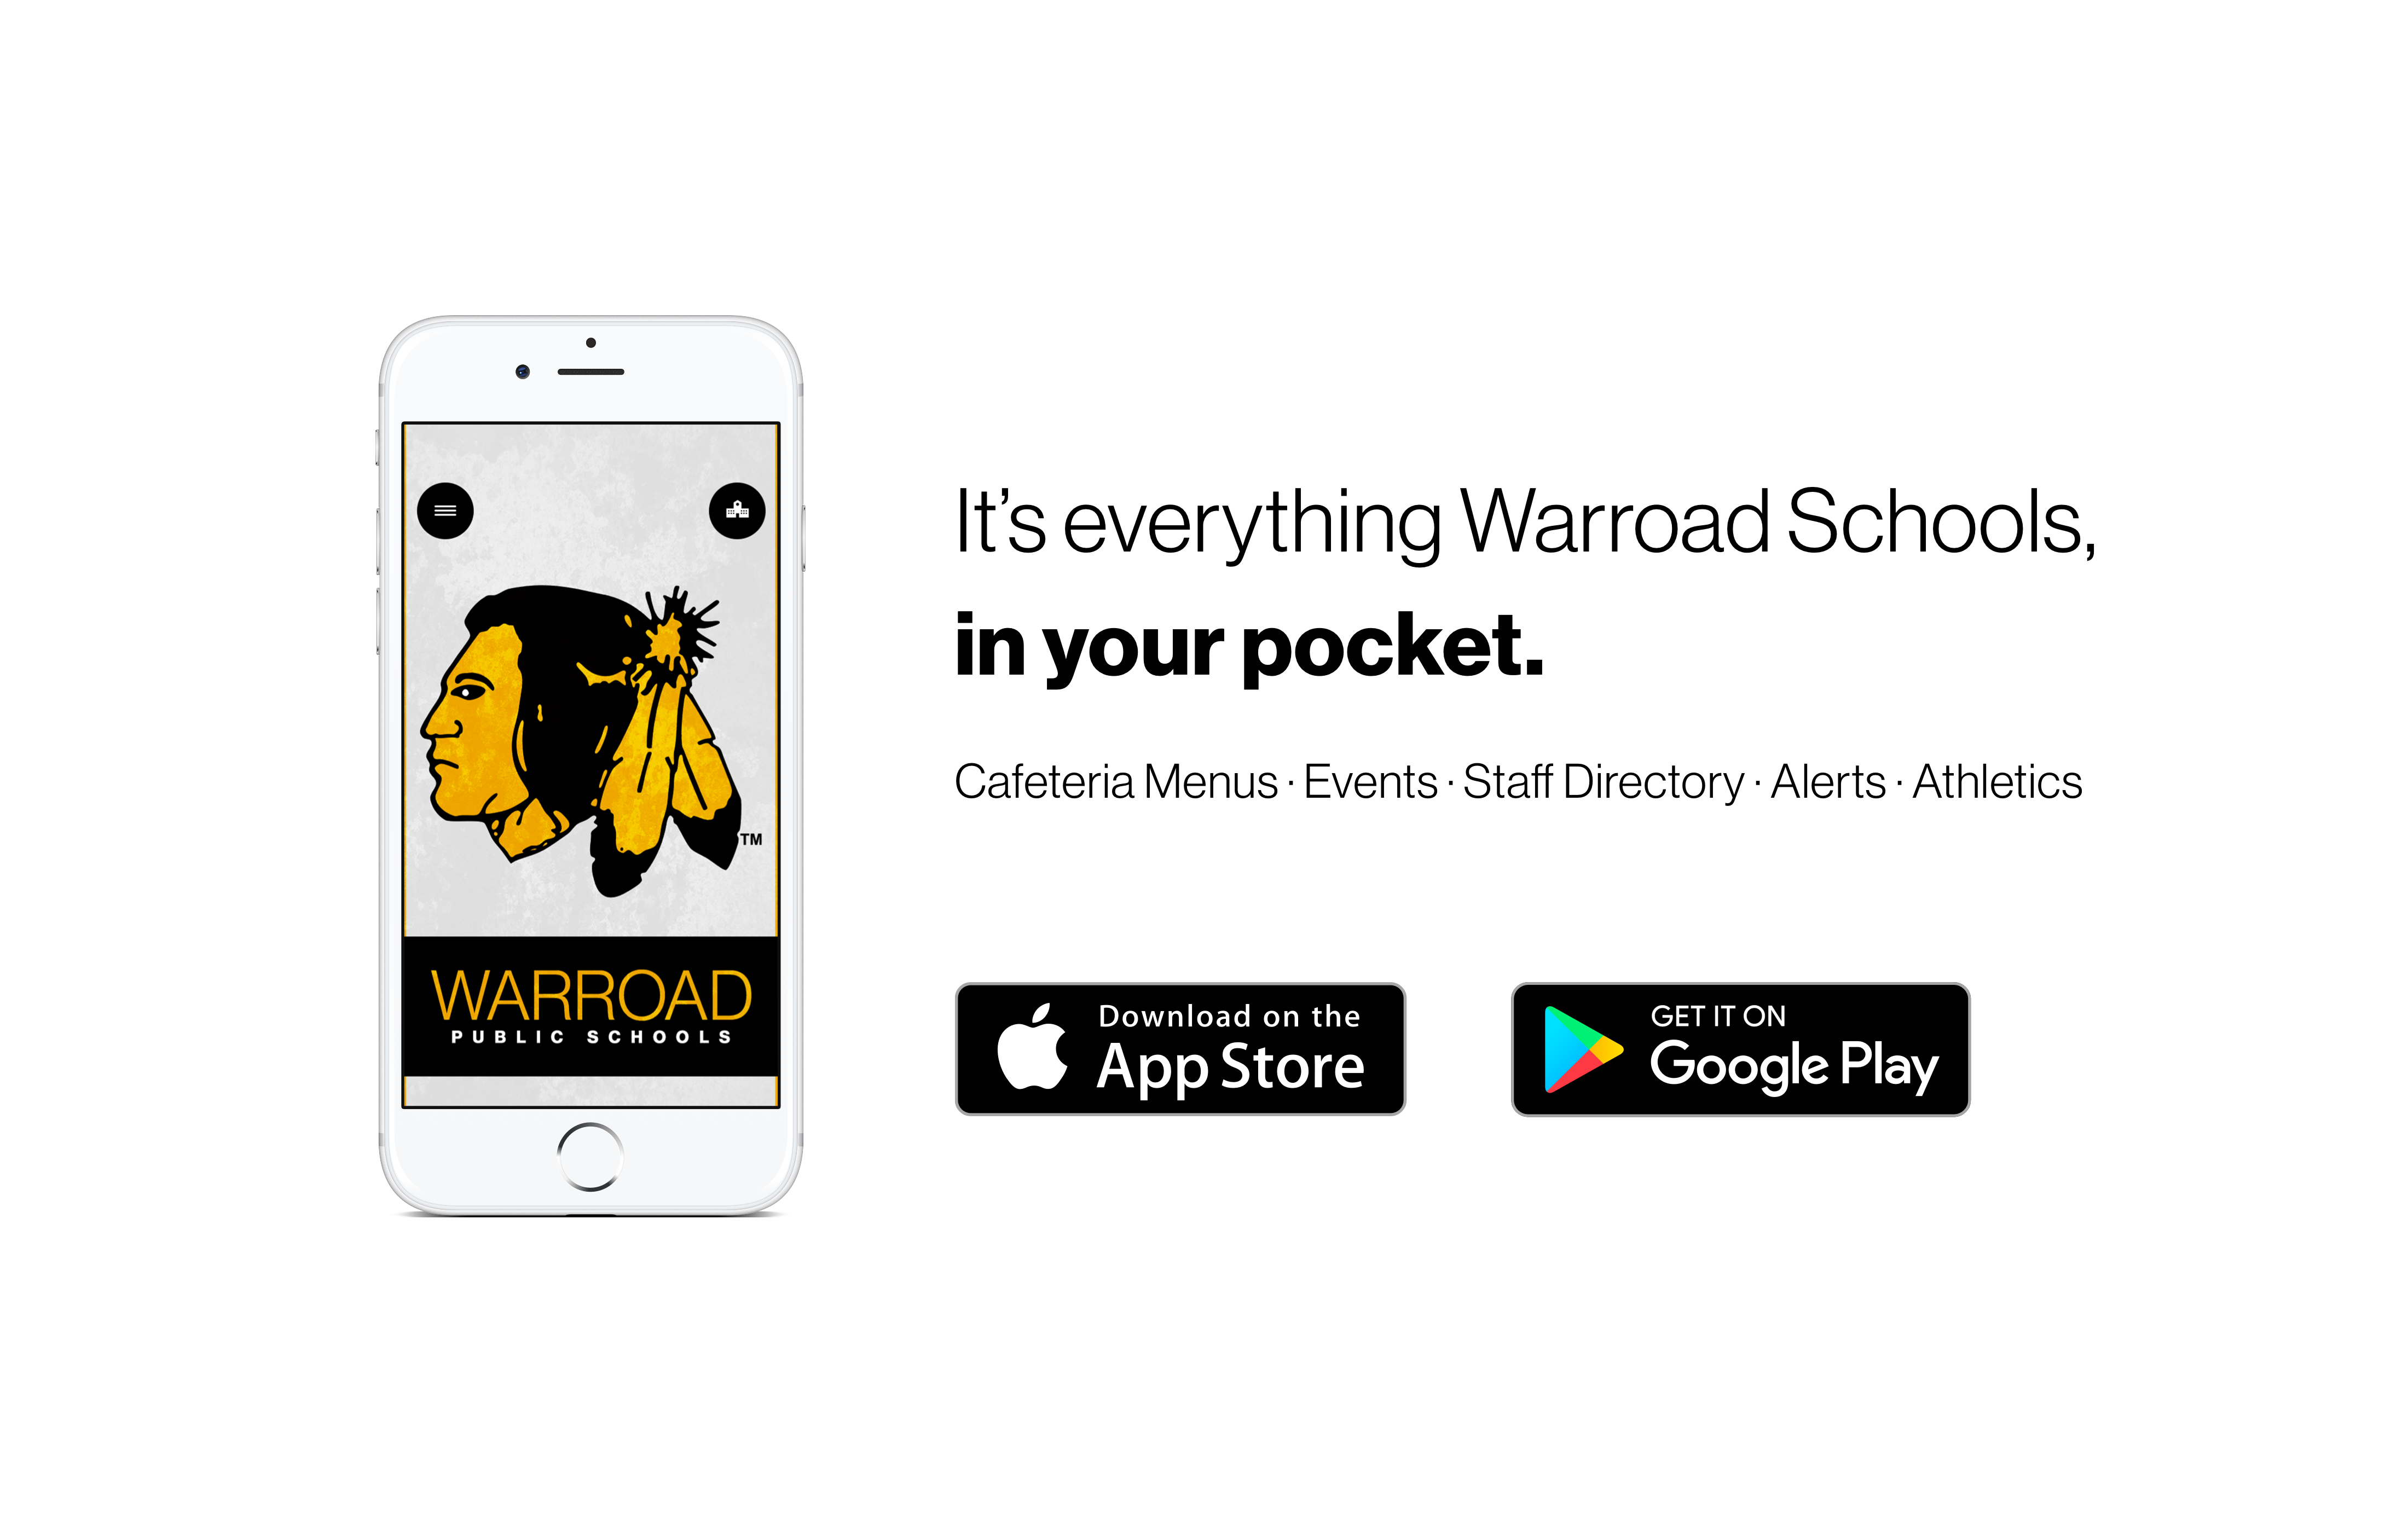 Warroad Schools App advertisement